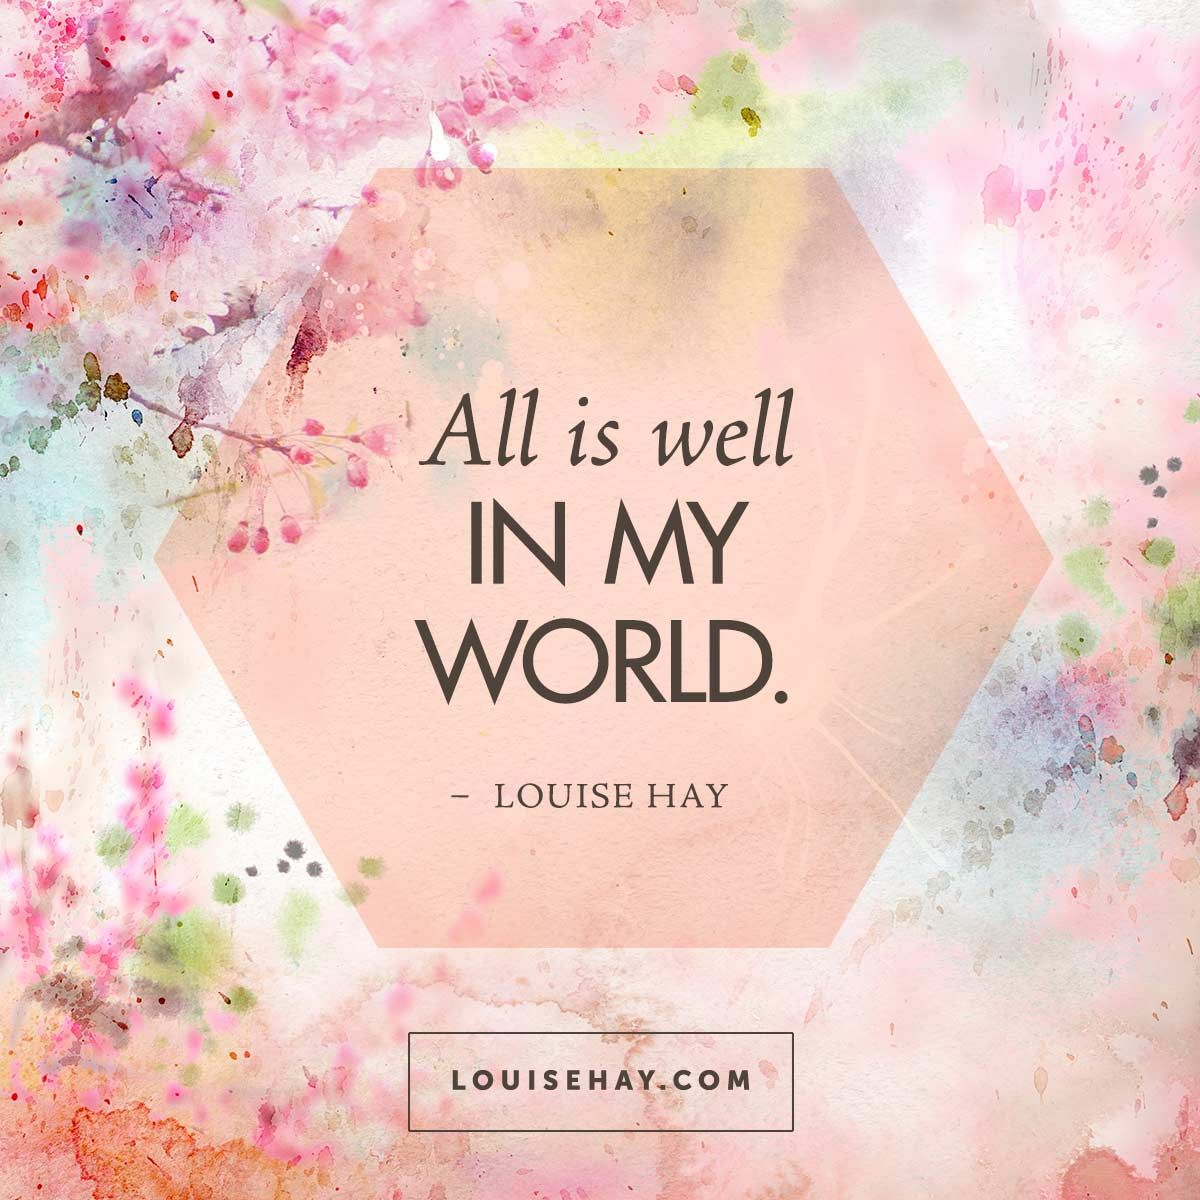 Positive Affirmation Quotes Daily Affirmations Louise Hay Quotes Louise Hay And Affirmation